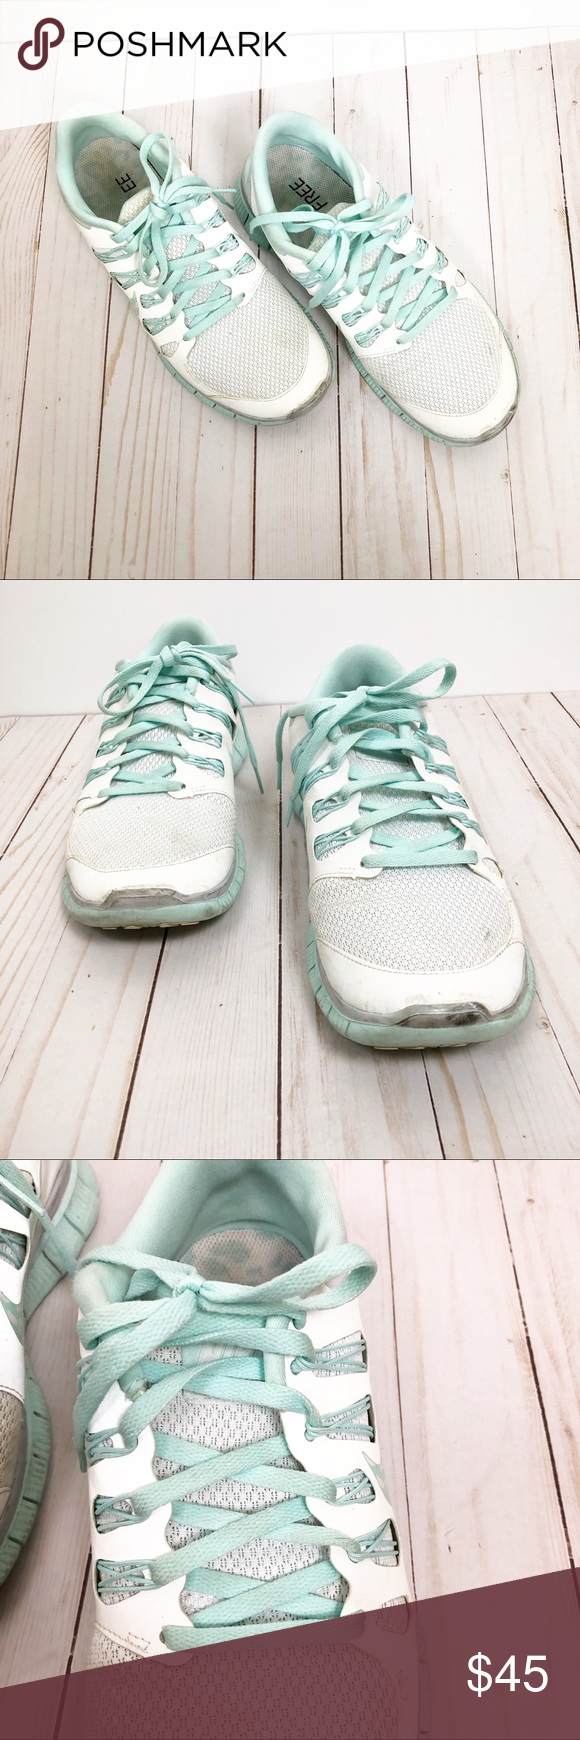 Nike Shoes   Nike Free Run Running Shoes, Size 11.   Color: Blue/White   Size: 11 #nikefreeoutfit